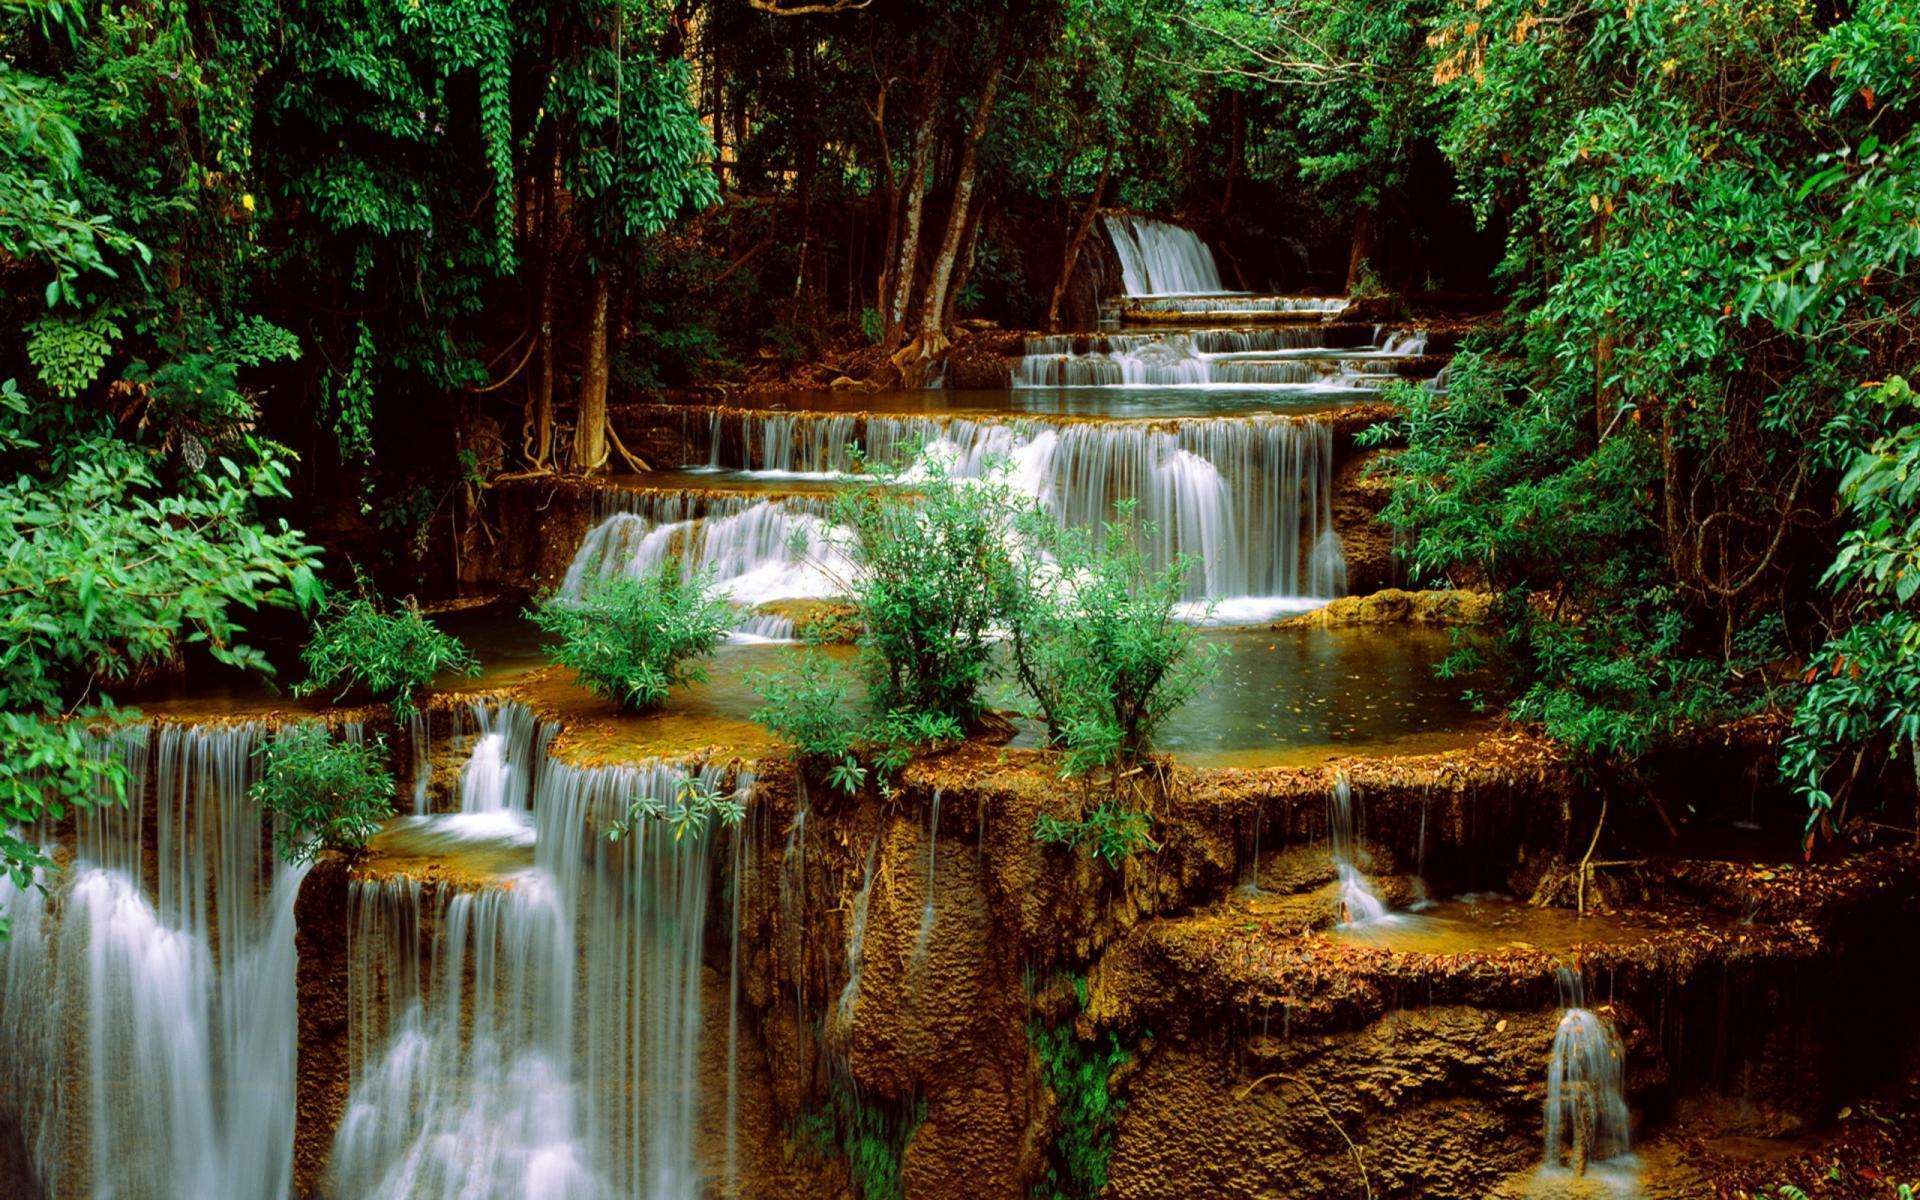 Good Wallpaper Desktop Background Waterfall - kBfCHRH  Pictures_894020 .jpg